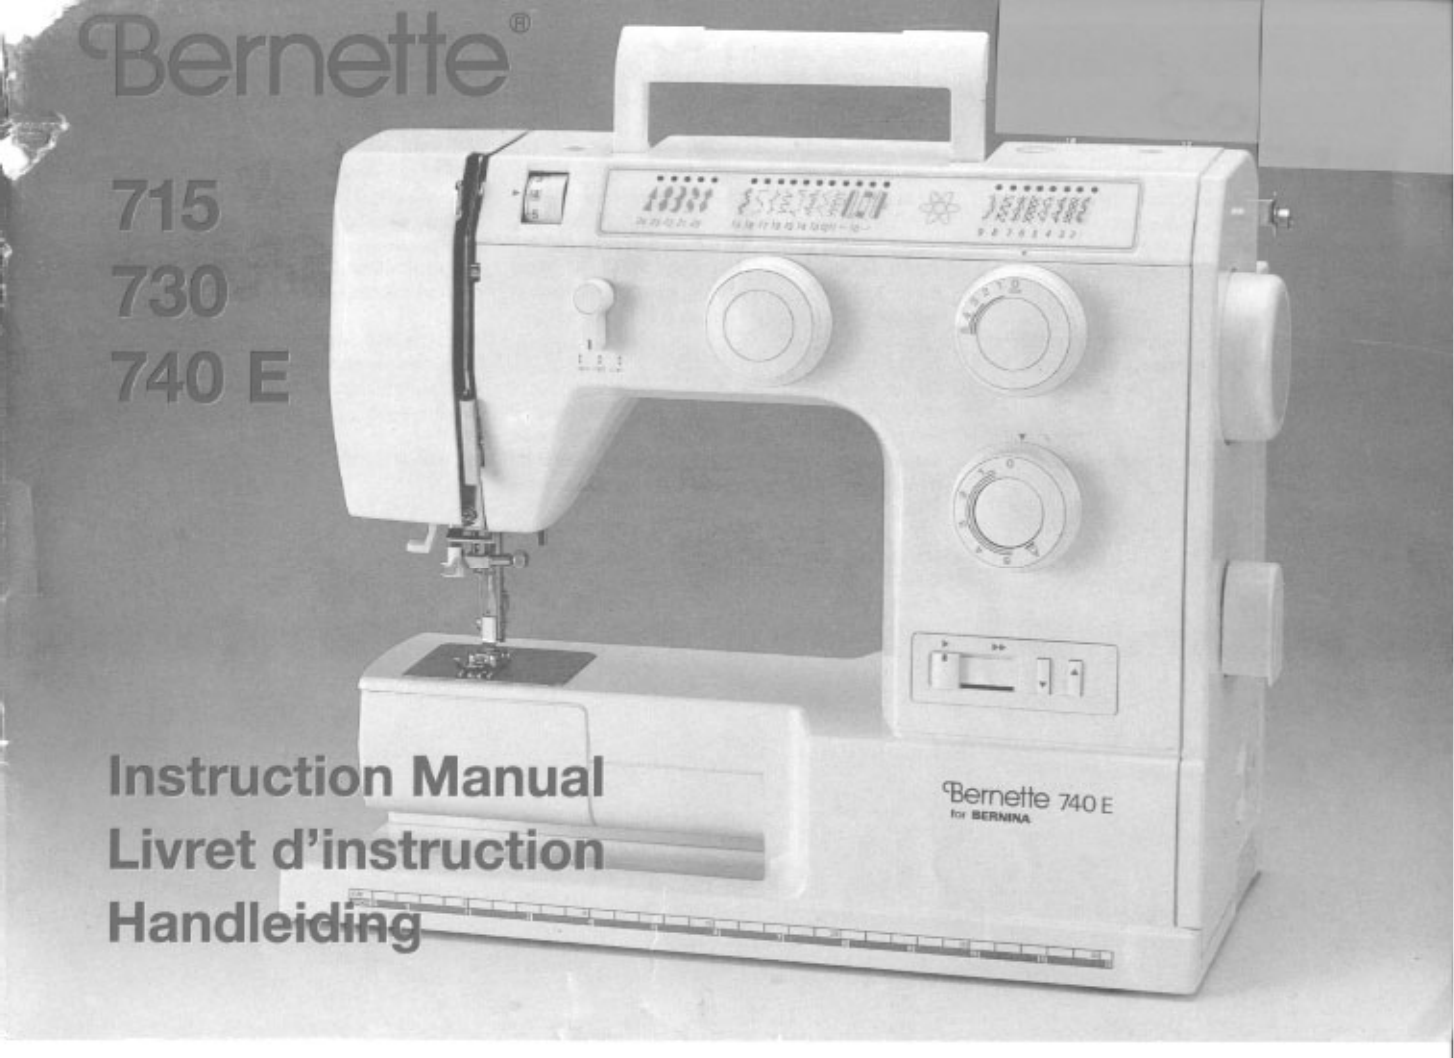 Bernina Sewing Wiring Diagram Reinvent Your Installation Book Together With 1948 Chevy Truck Machine 715 User Guide Manualsonline Com Rh Homeappliance Ridgeland Ms 830